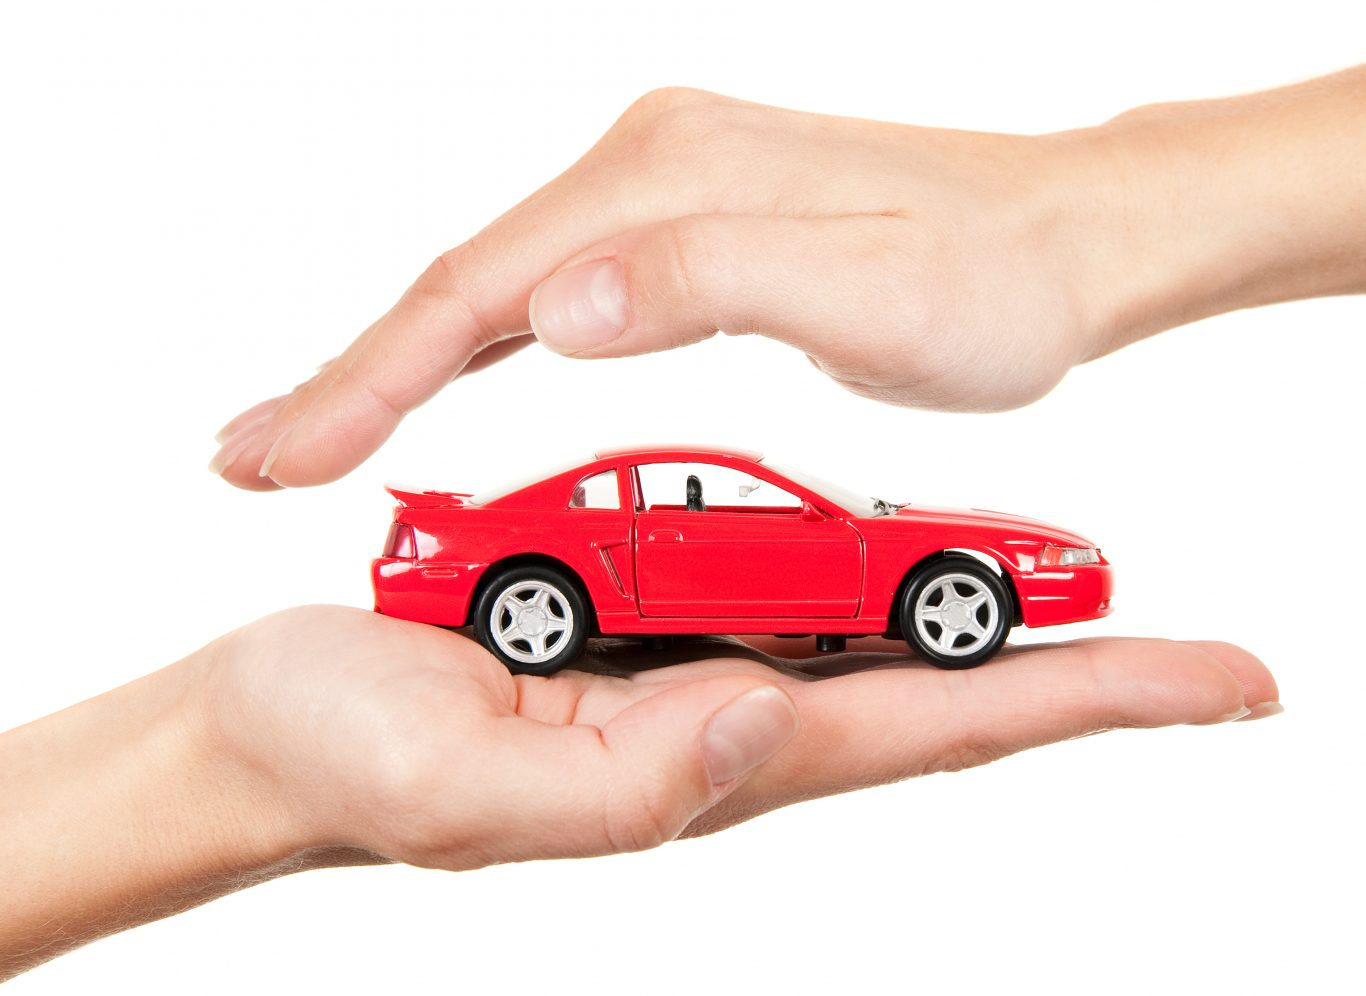 Red car in hands on a white background. Concept of safe driving